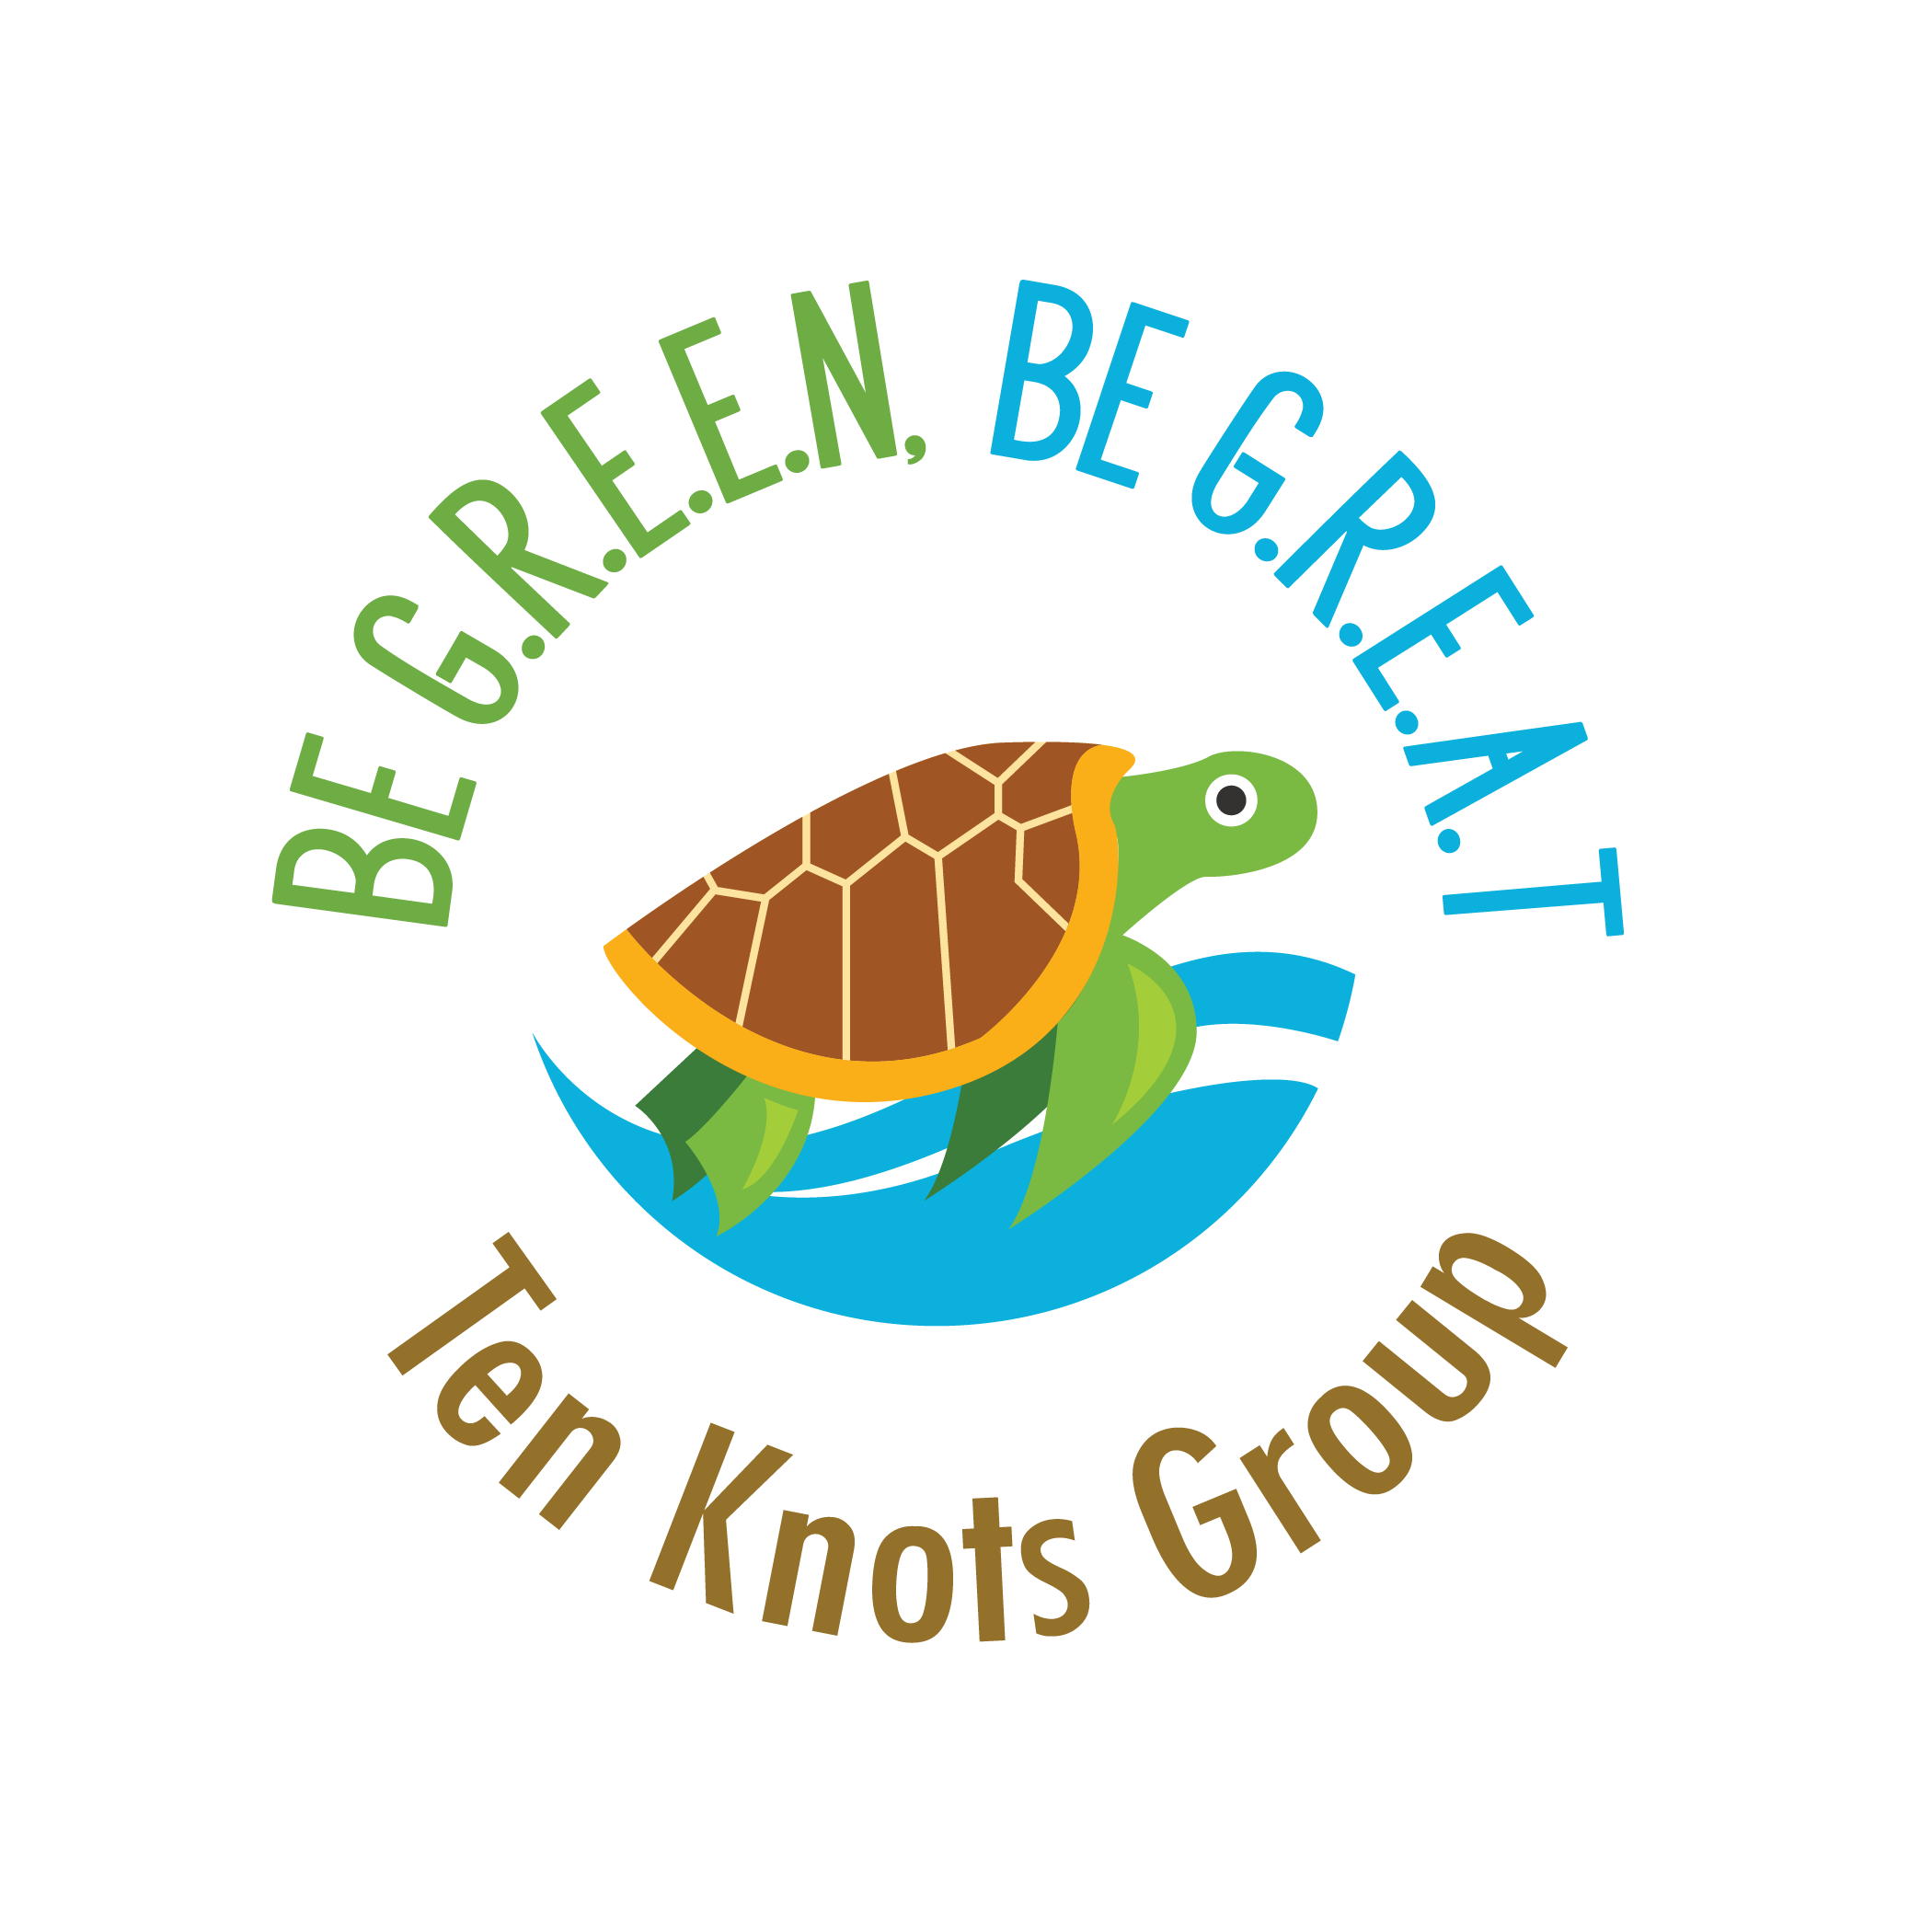 Ten Knots Group Environment and Sustainability